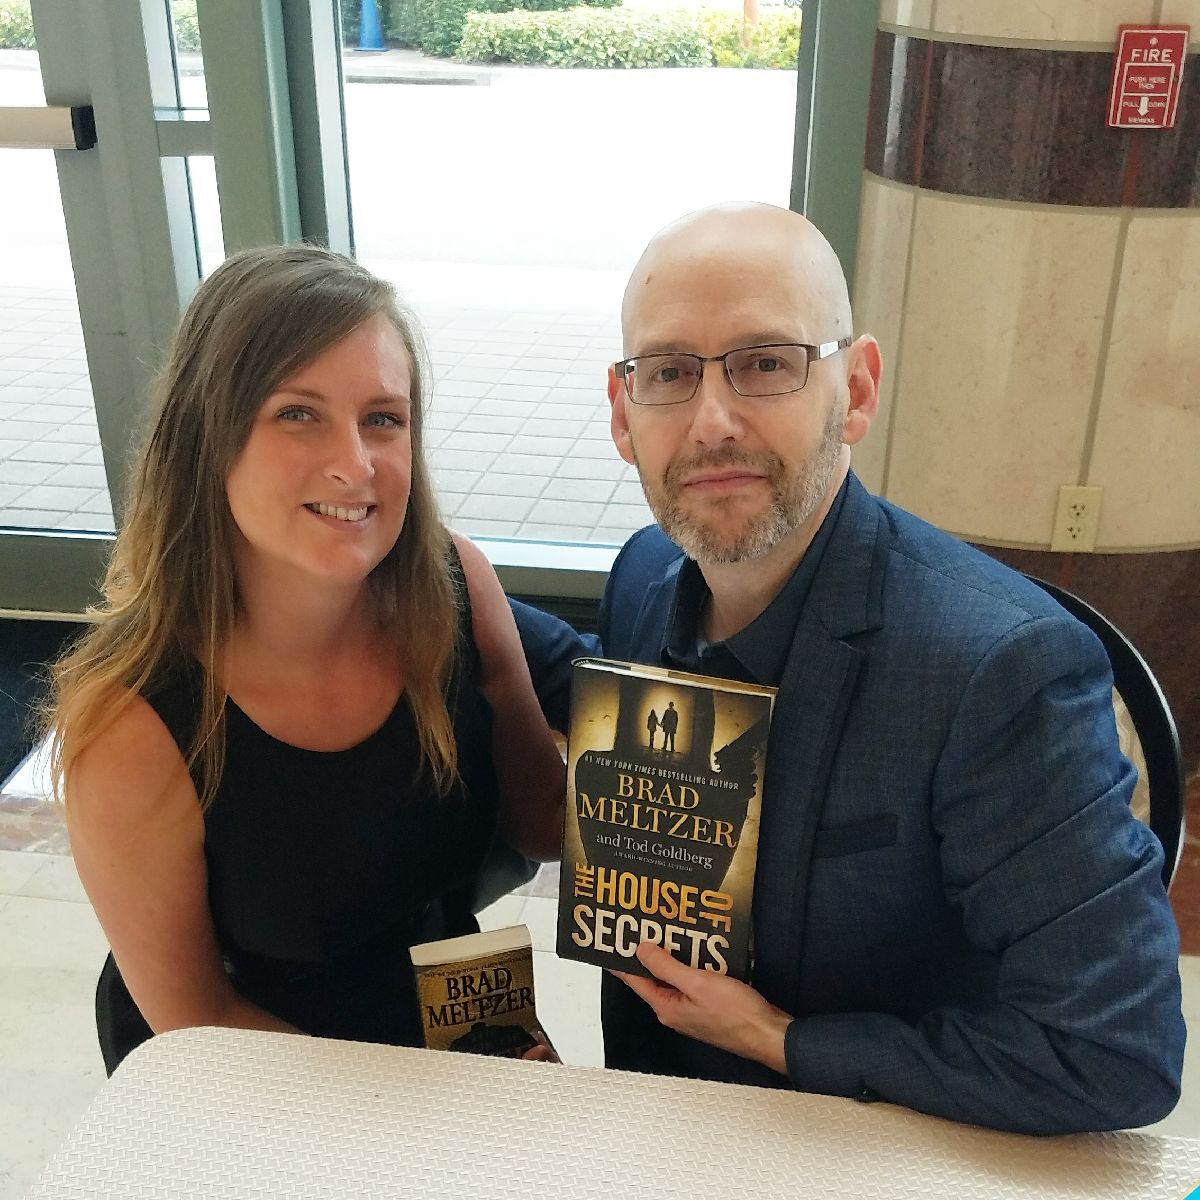 West Palm Beach Students Meet Brad Meltzer at Forum Club